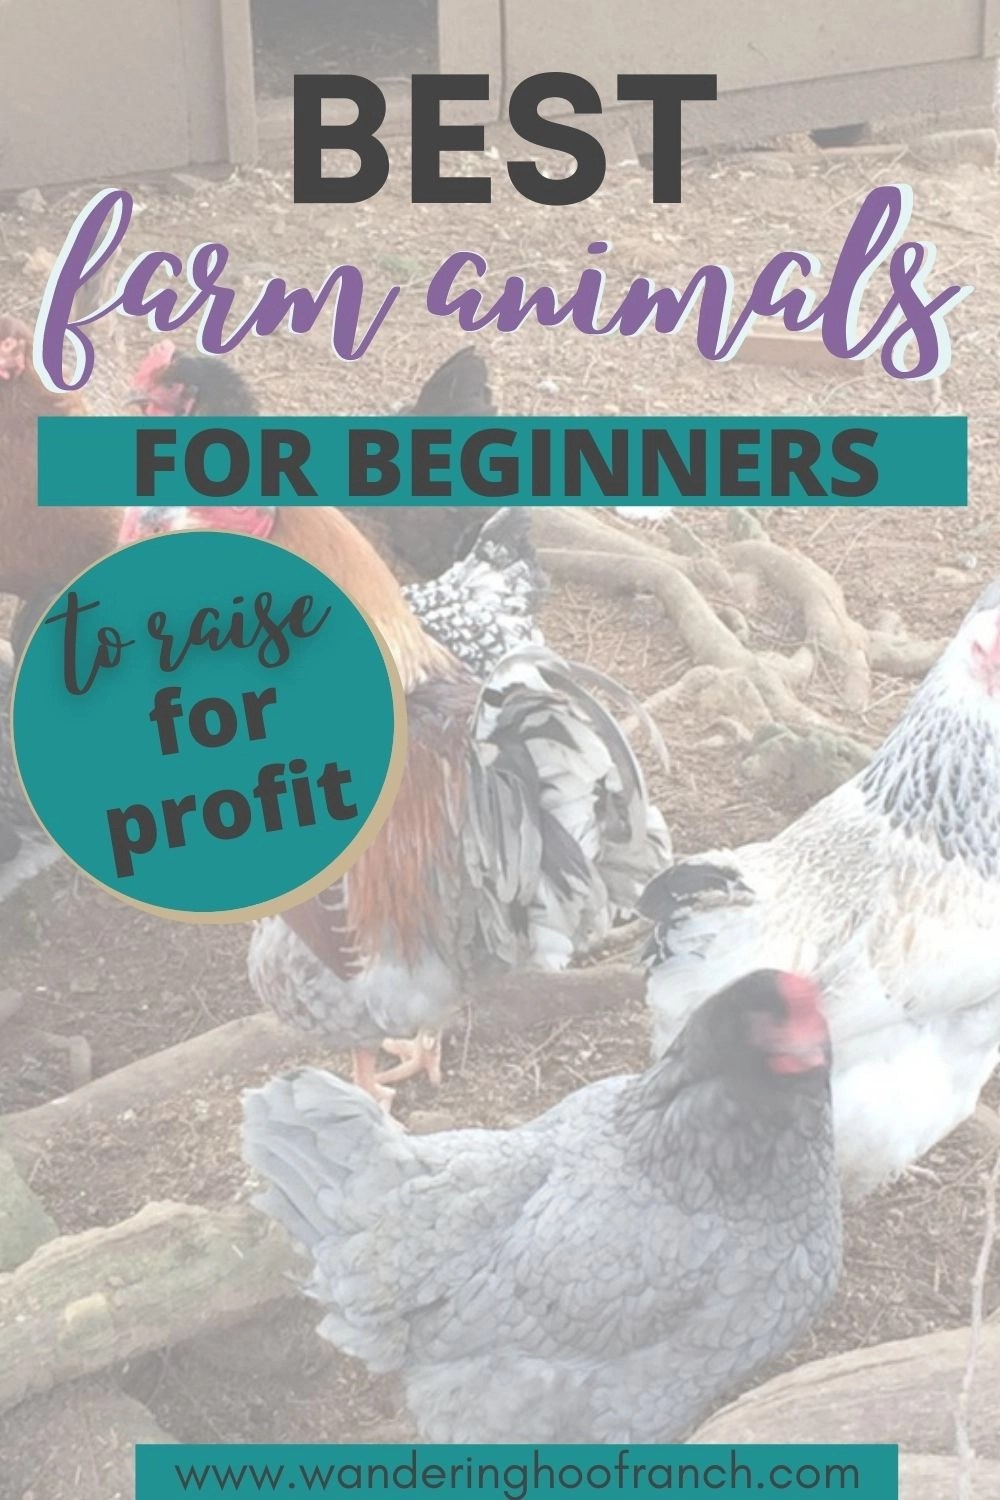 Best Farm animals to raise for beginners pin image overlay on image of chicken flock